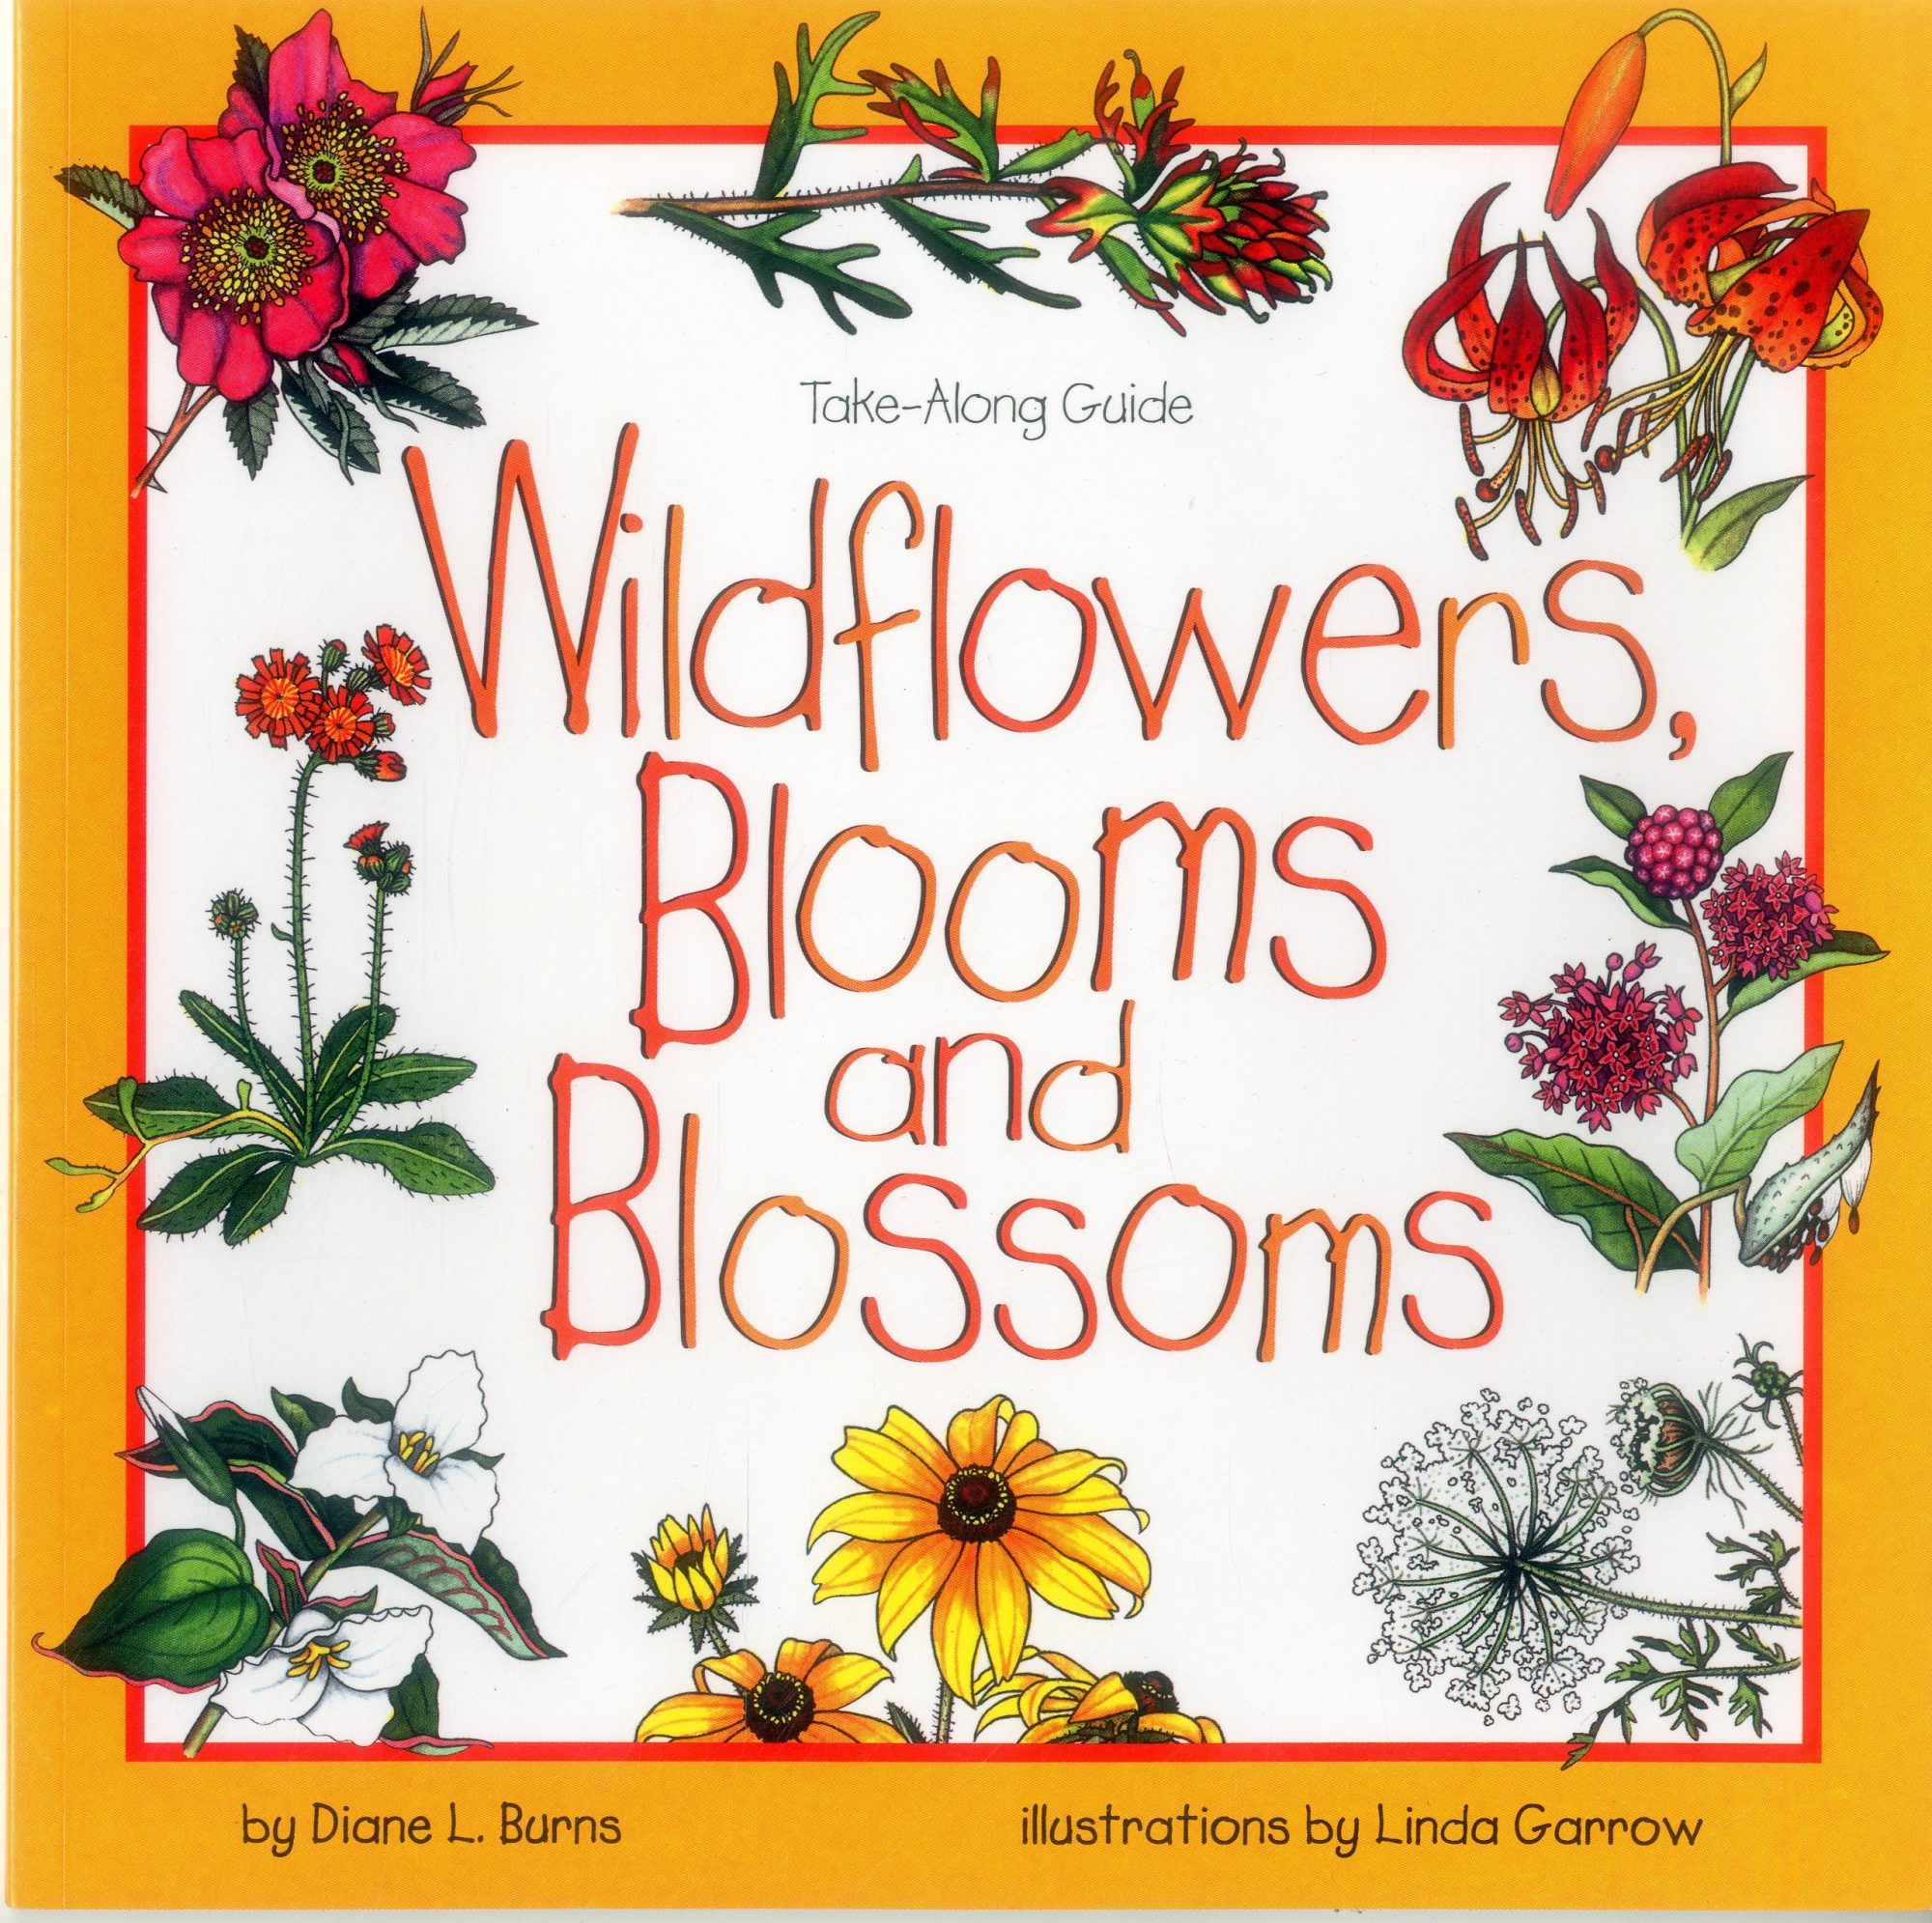 Wildflowers, Blooms & Blossoms by Diane L. Burns